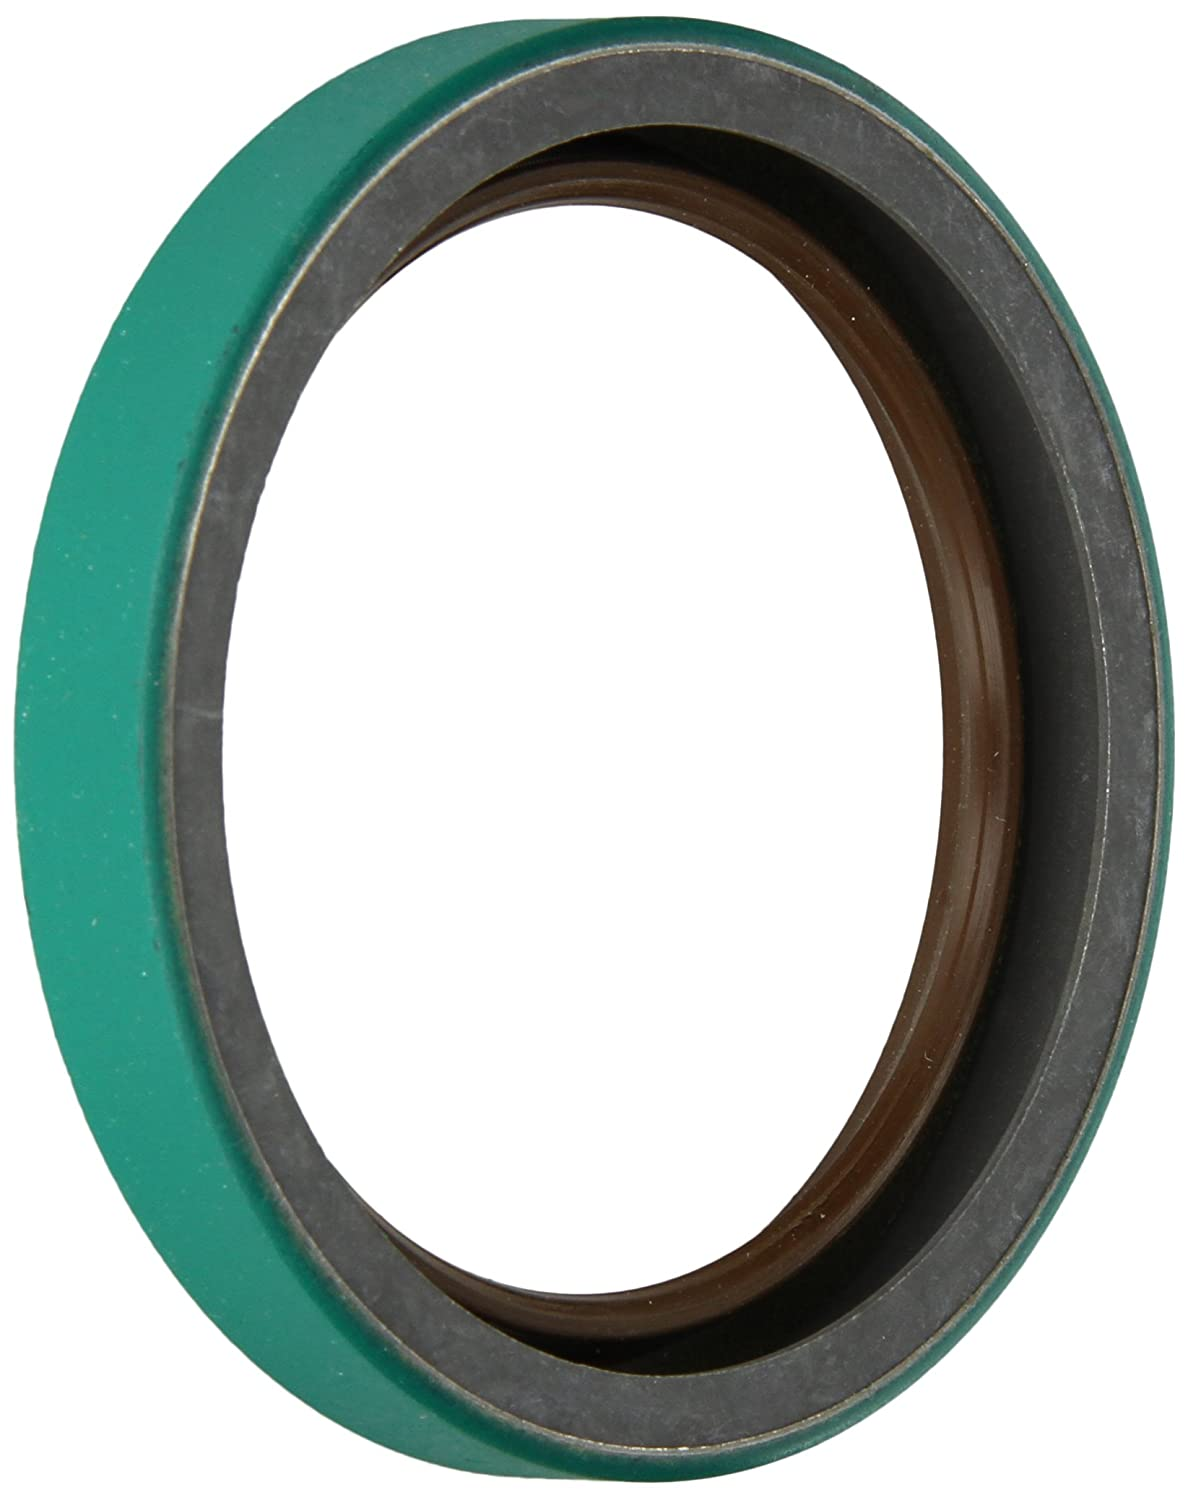 SKF 23040 LDS Small Bore Seal V Style Inch Max 56% OFF Code excellence Lip CRWH1